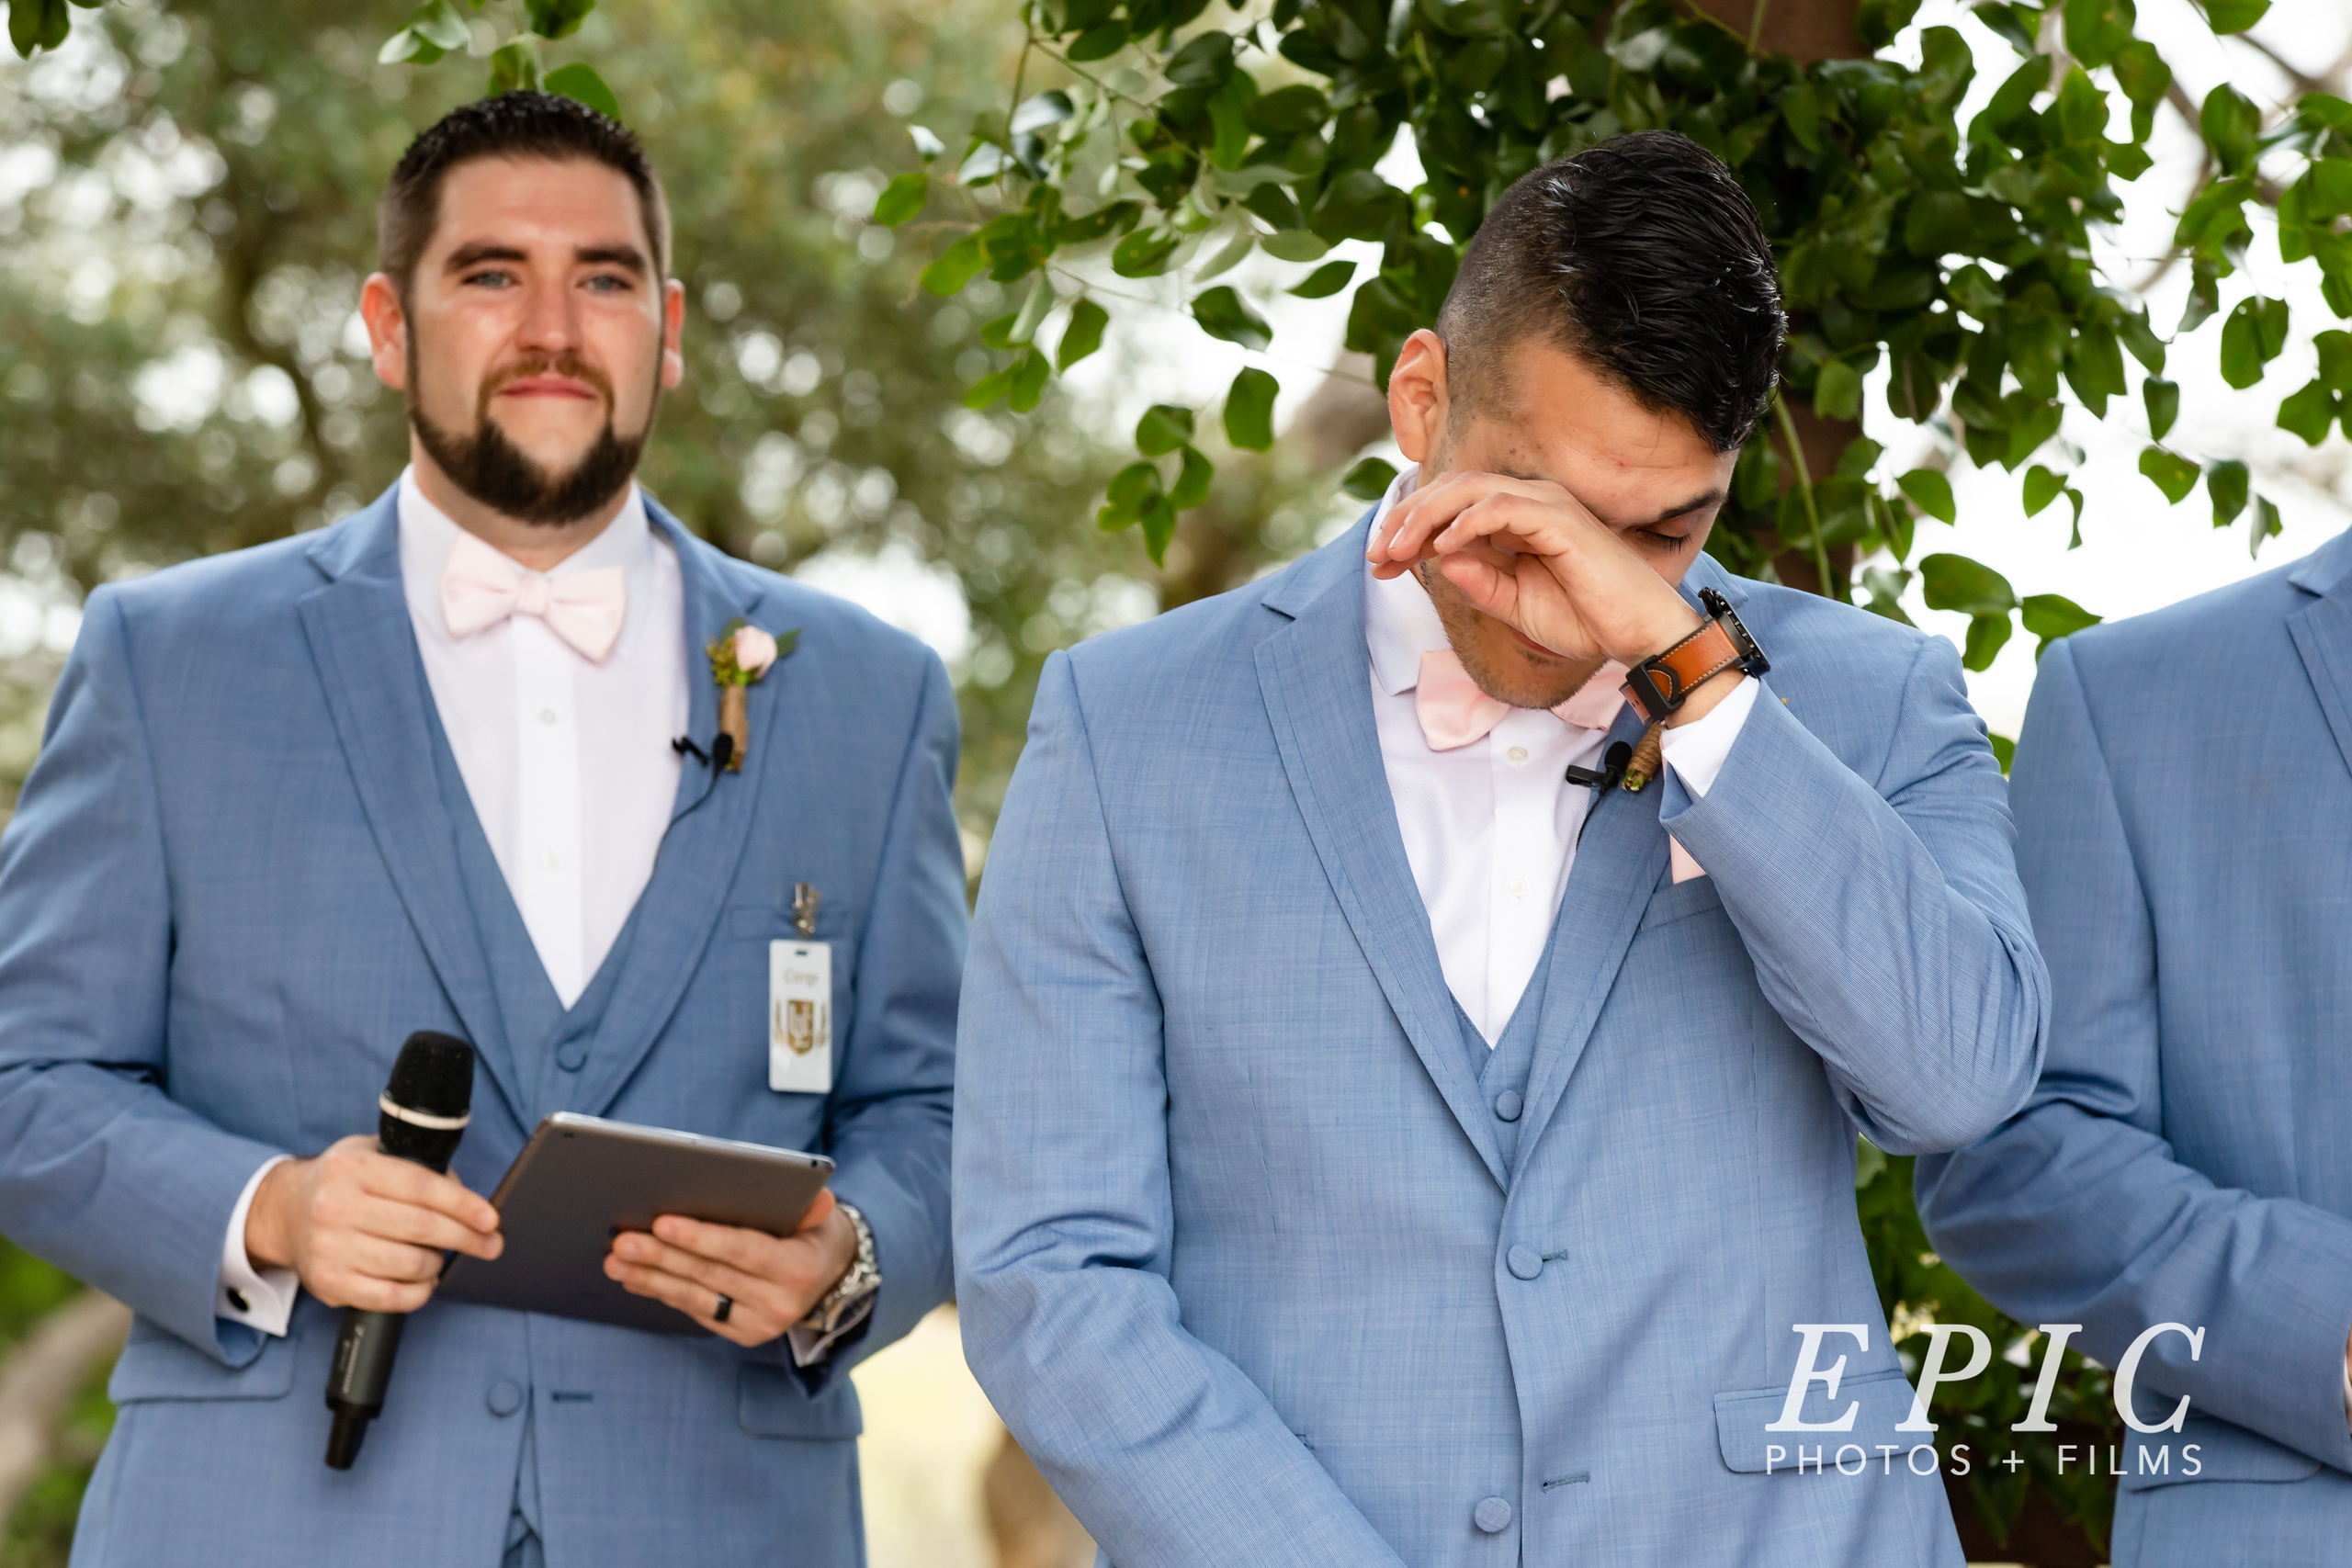 The groom cries happy tears when seeing his bride walking down the aisle